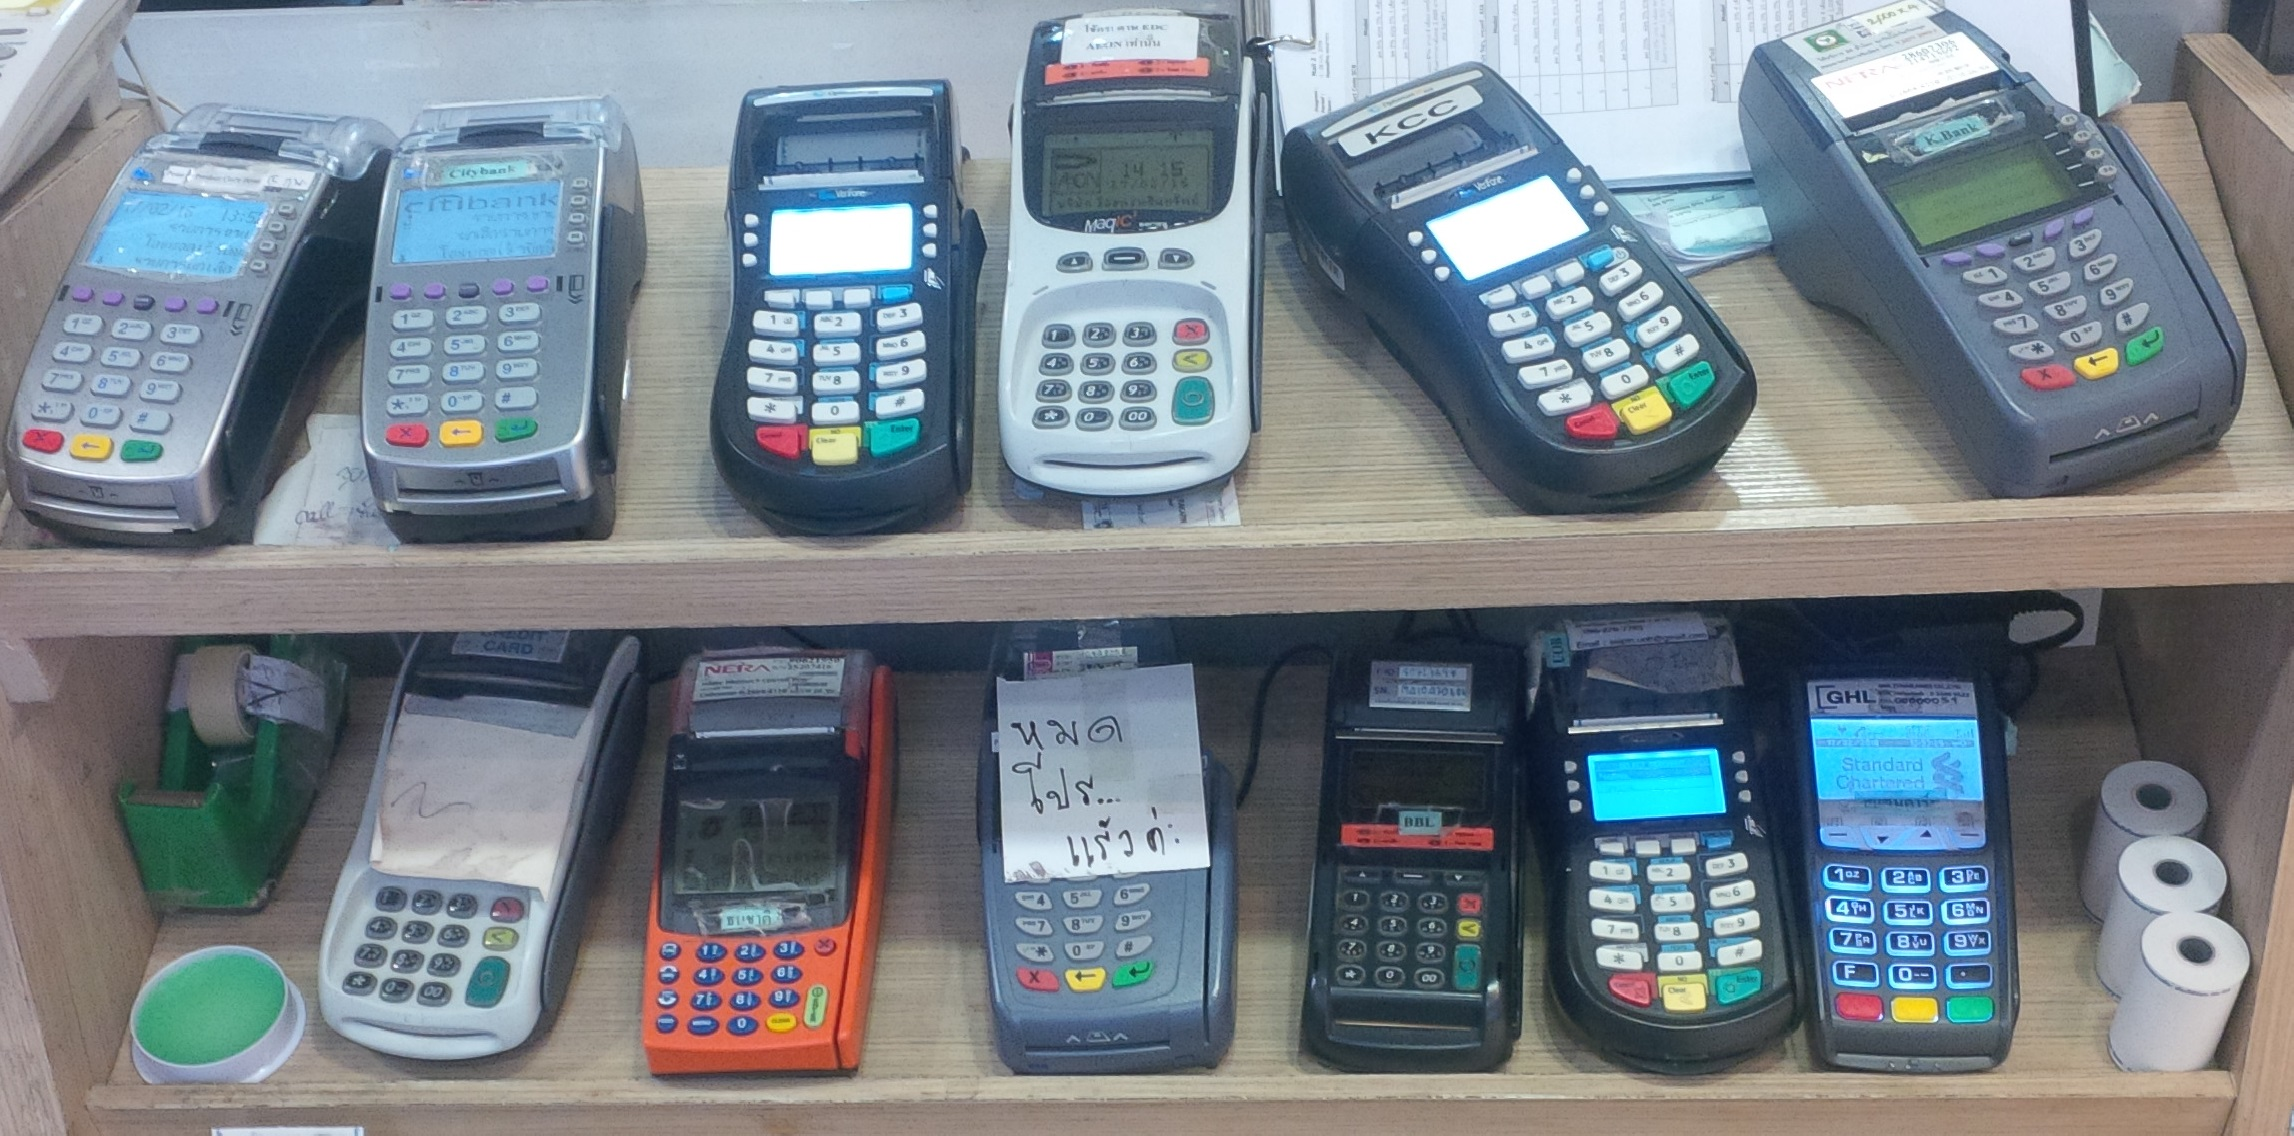 EFT POS Point of Sale Terminal from Hypercom, Verifone, Ingenico, Equinox, SpireMaxspeed, Neoware, IBM, Datamax, Datalogic, HHP,NCR, CCV